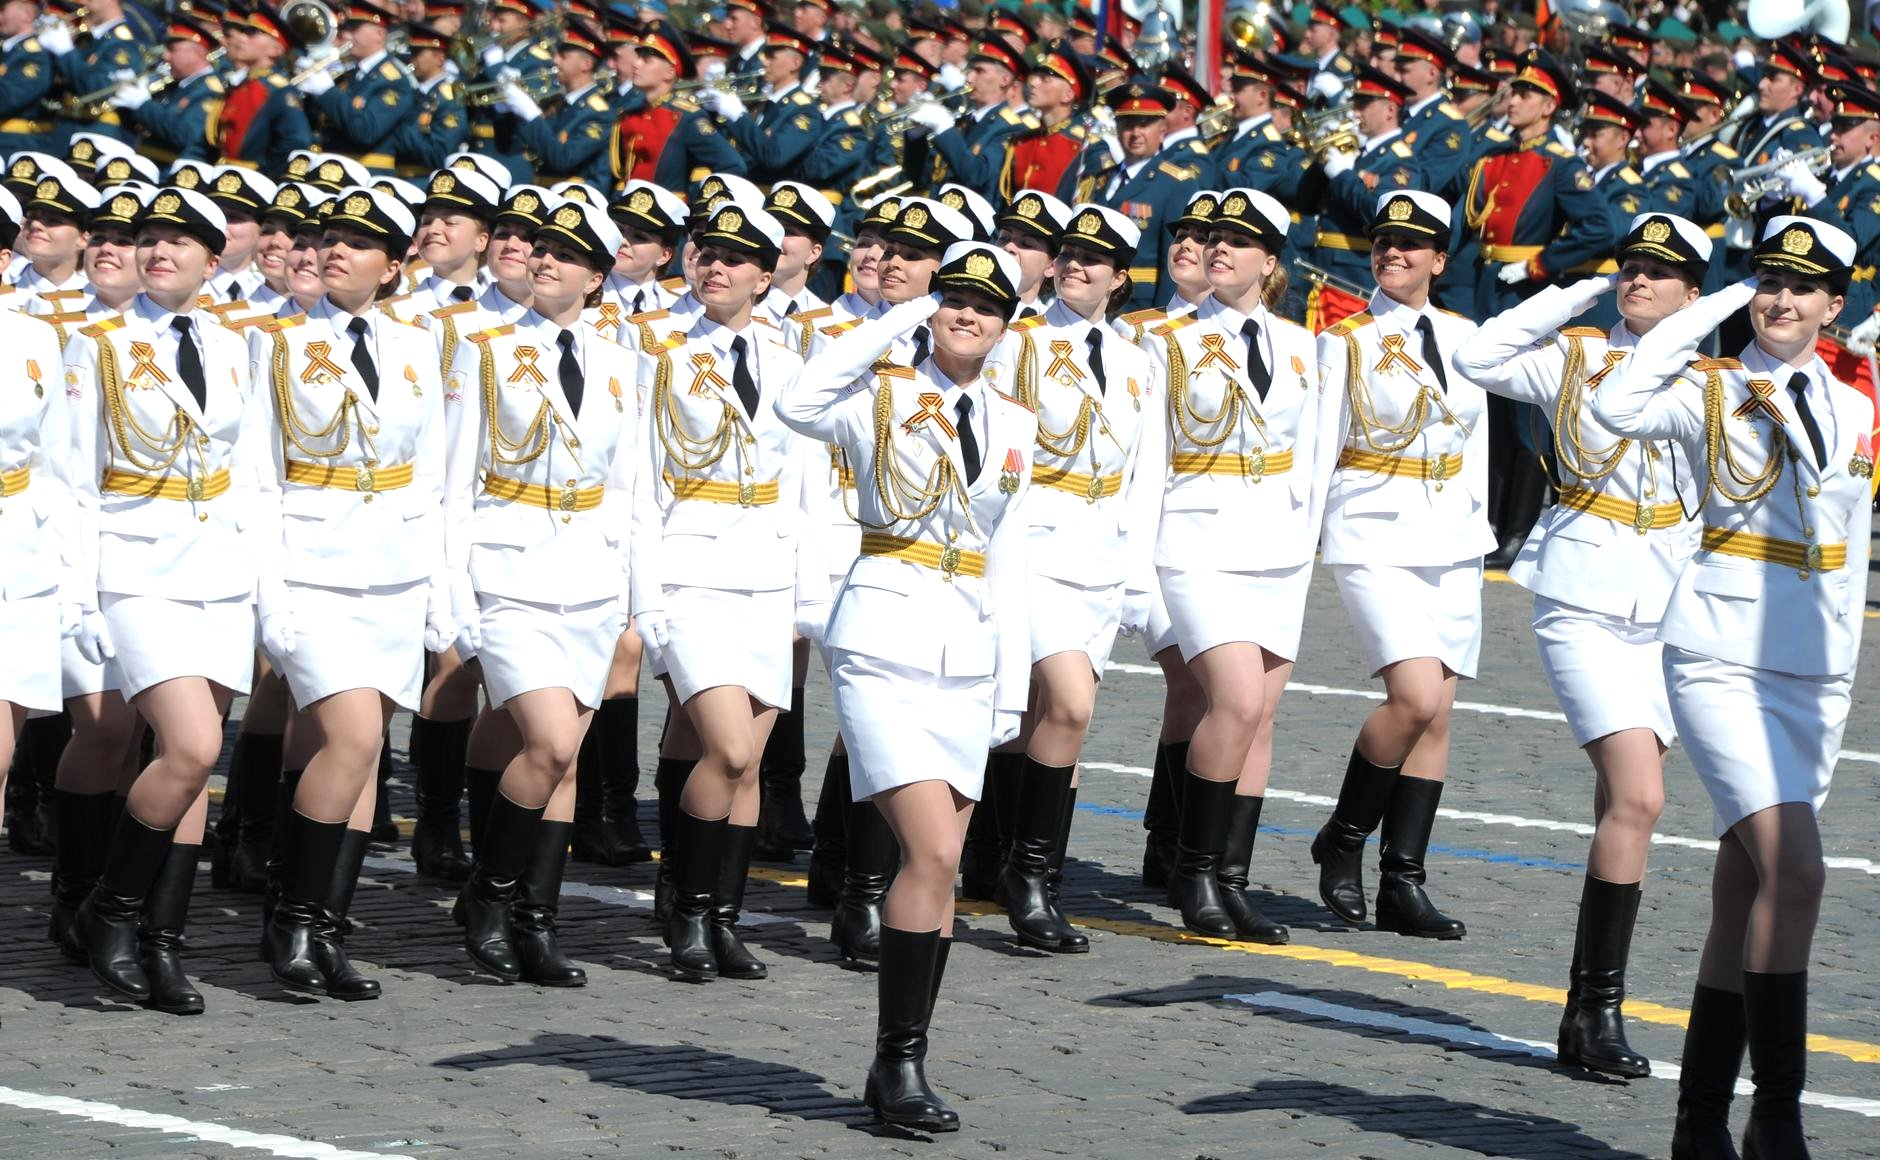 Military_parade_on_Red_Square_2016-05-09